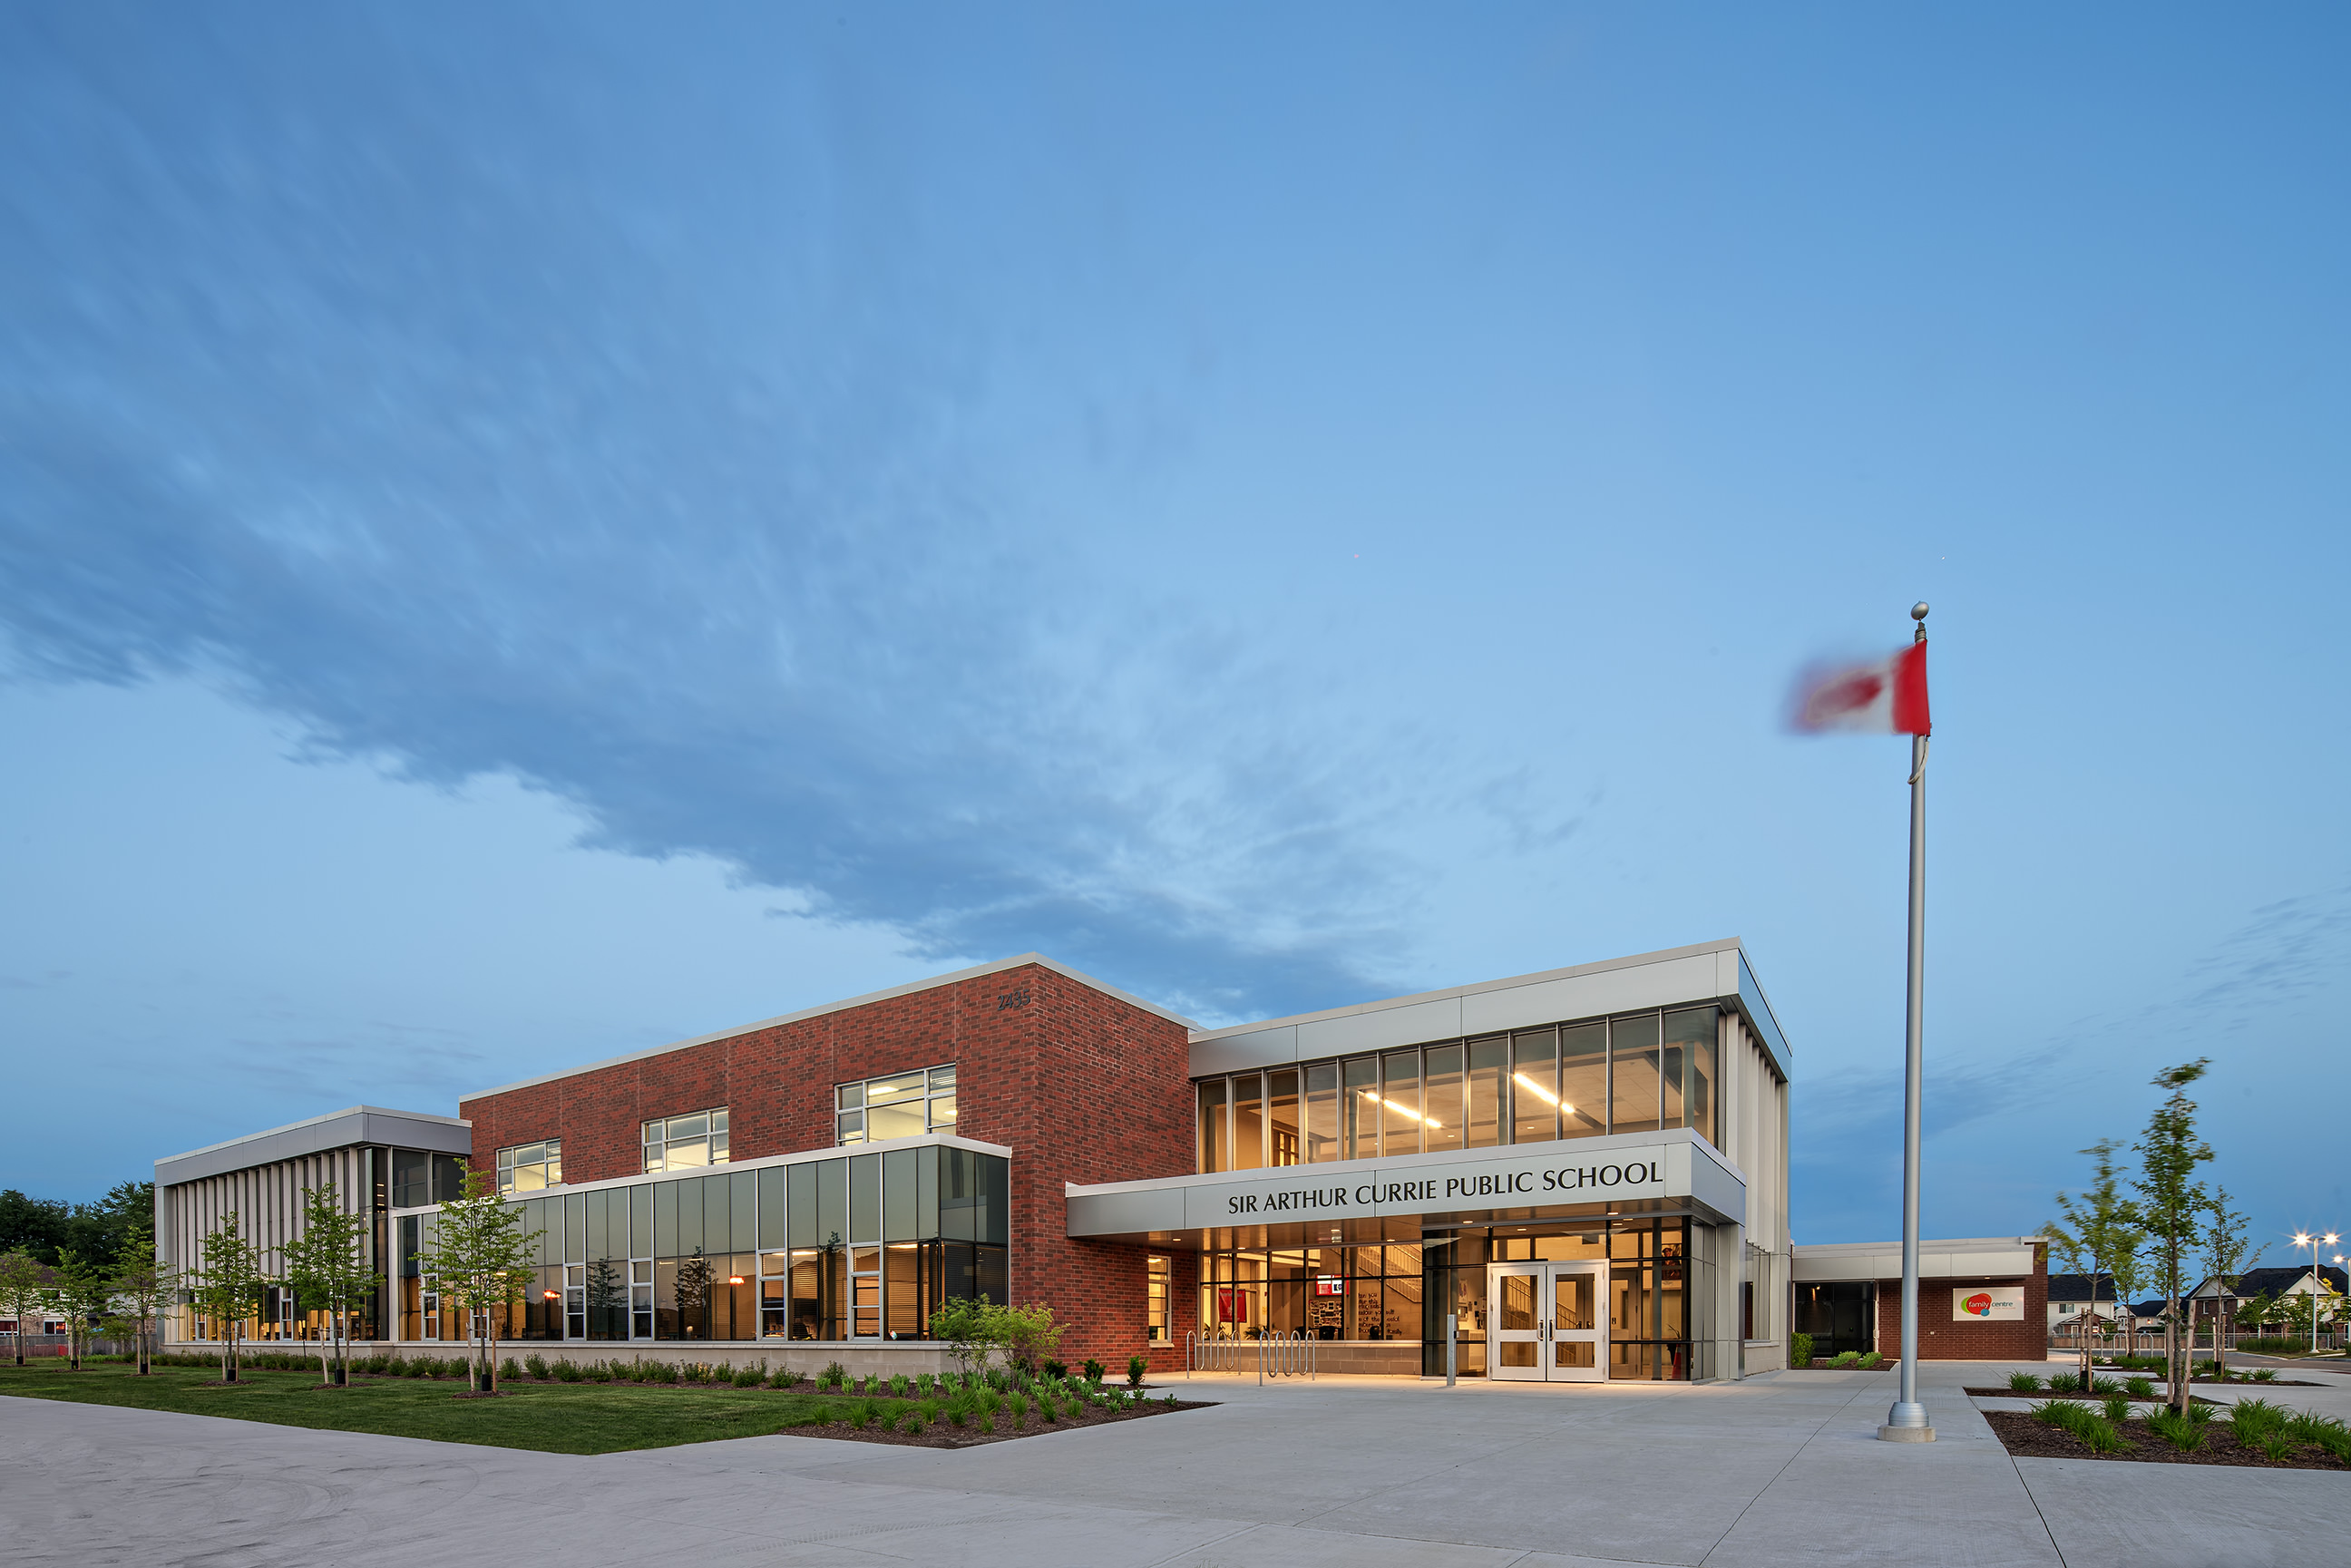 Lights come on at Twilight for Sir Arthur Currie Public School